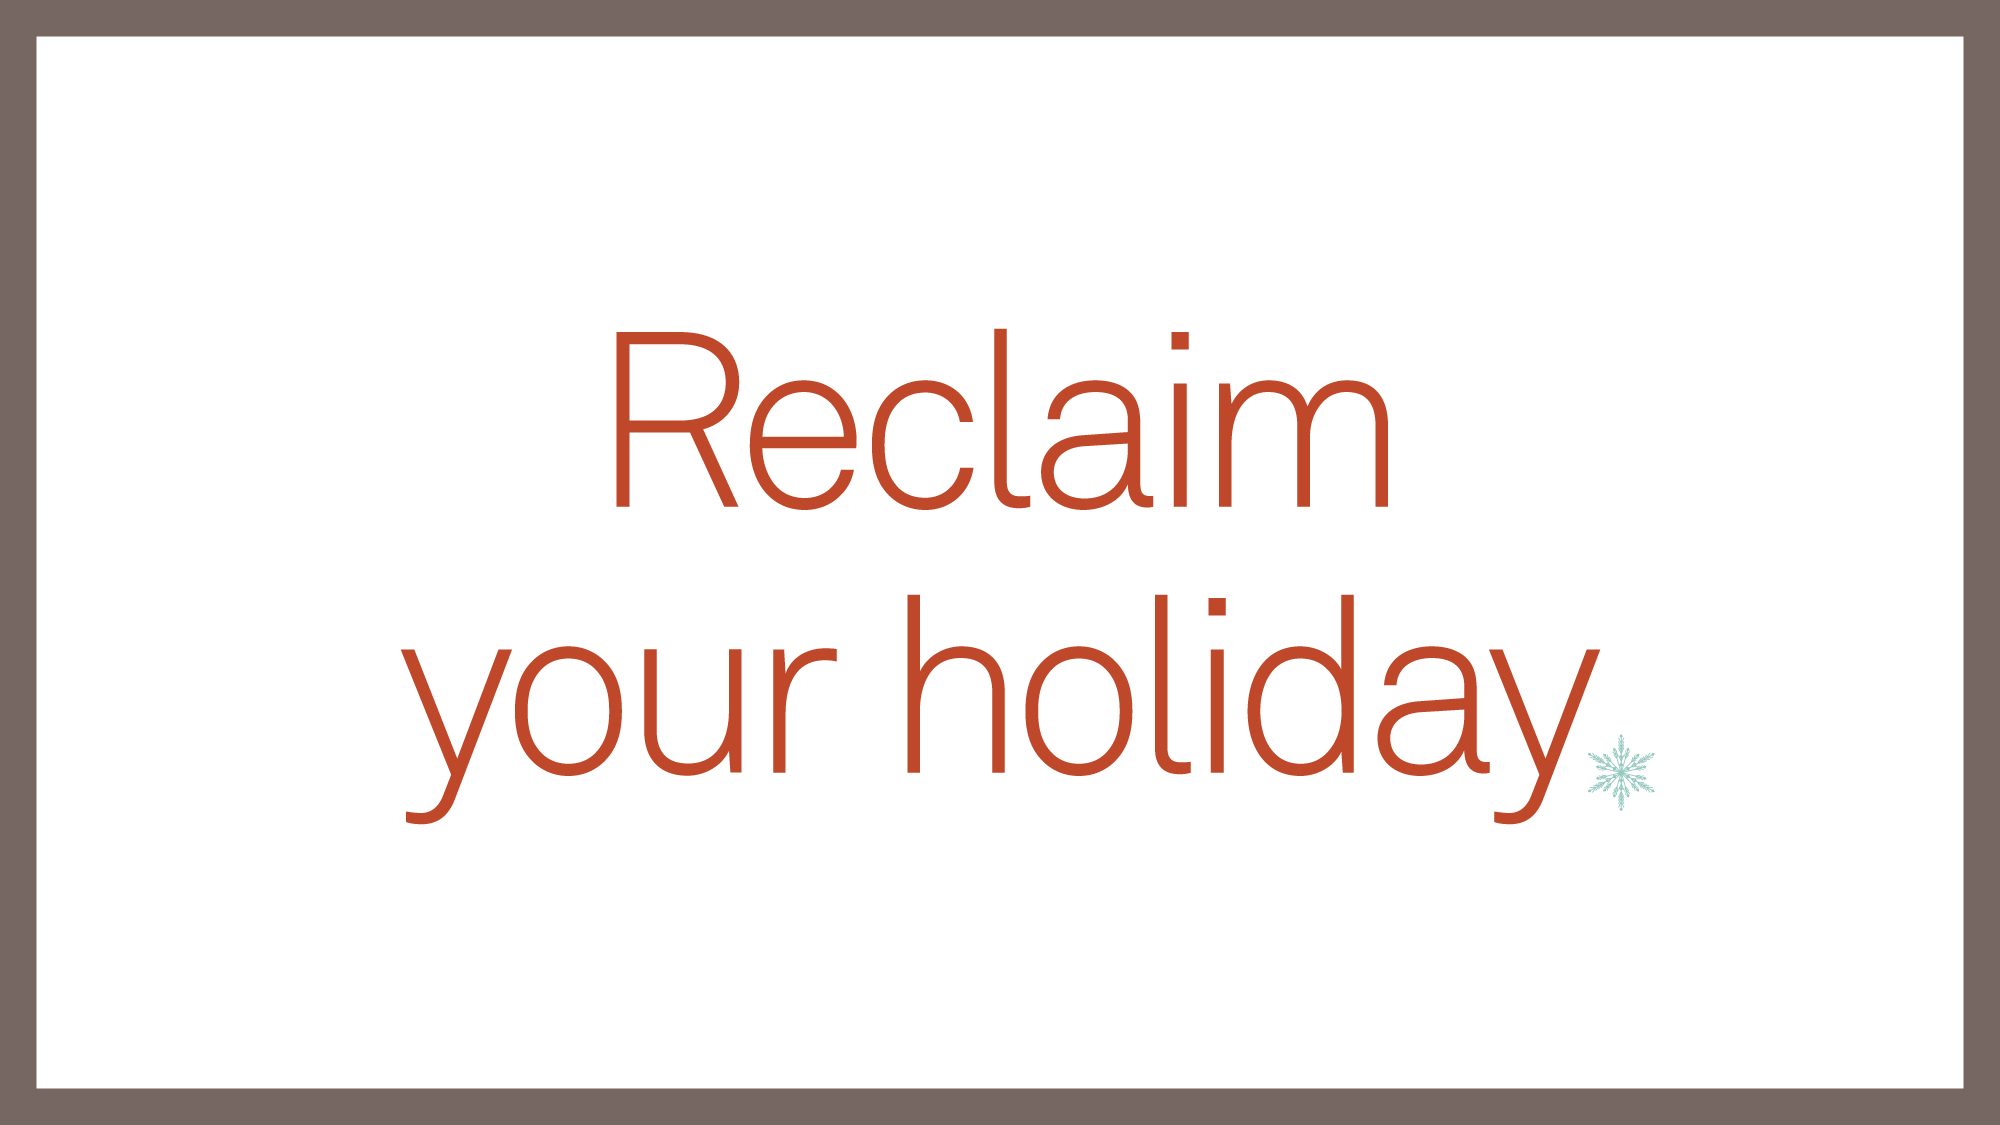 Executive Coach shares tips on reclaiming your holiday